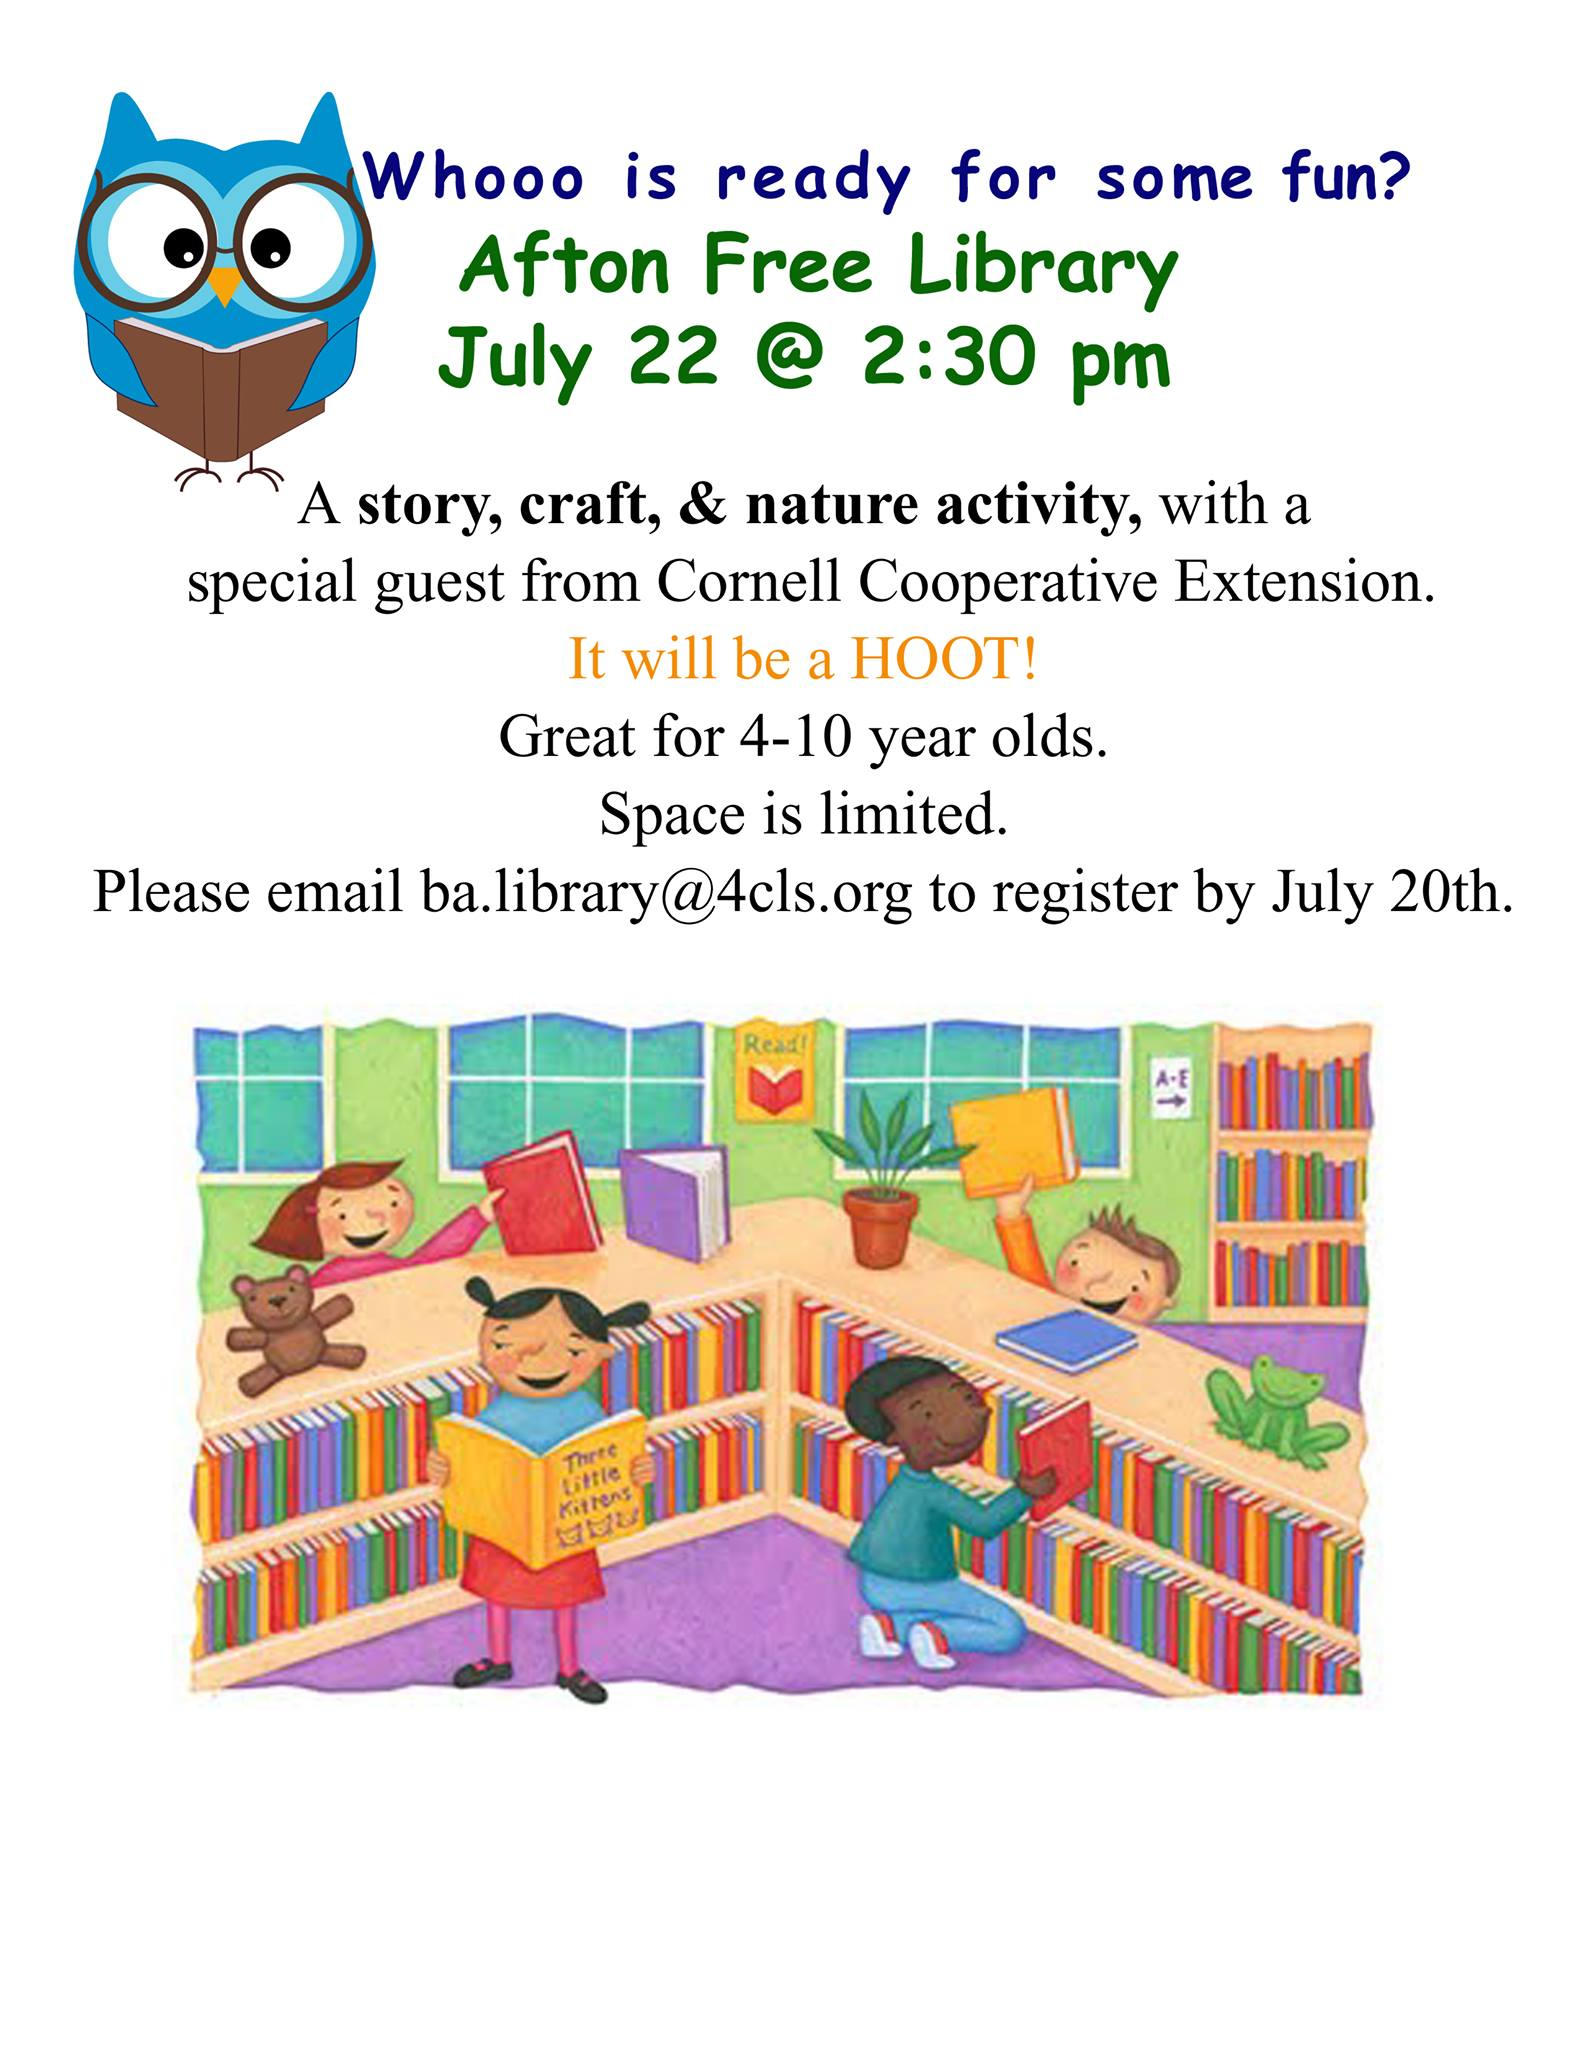 Afton Free Library In-person Summer Reading Program- July 22 at 2:30 PM